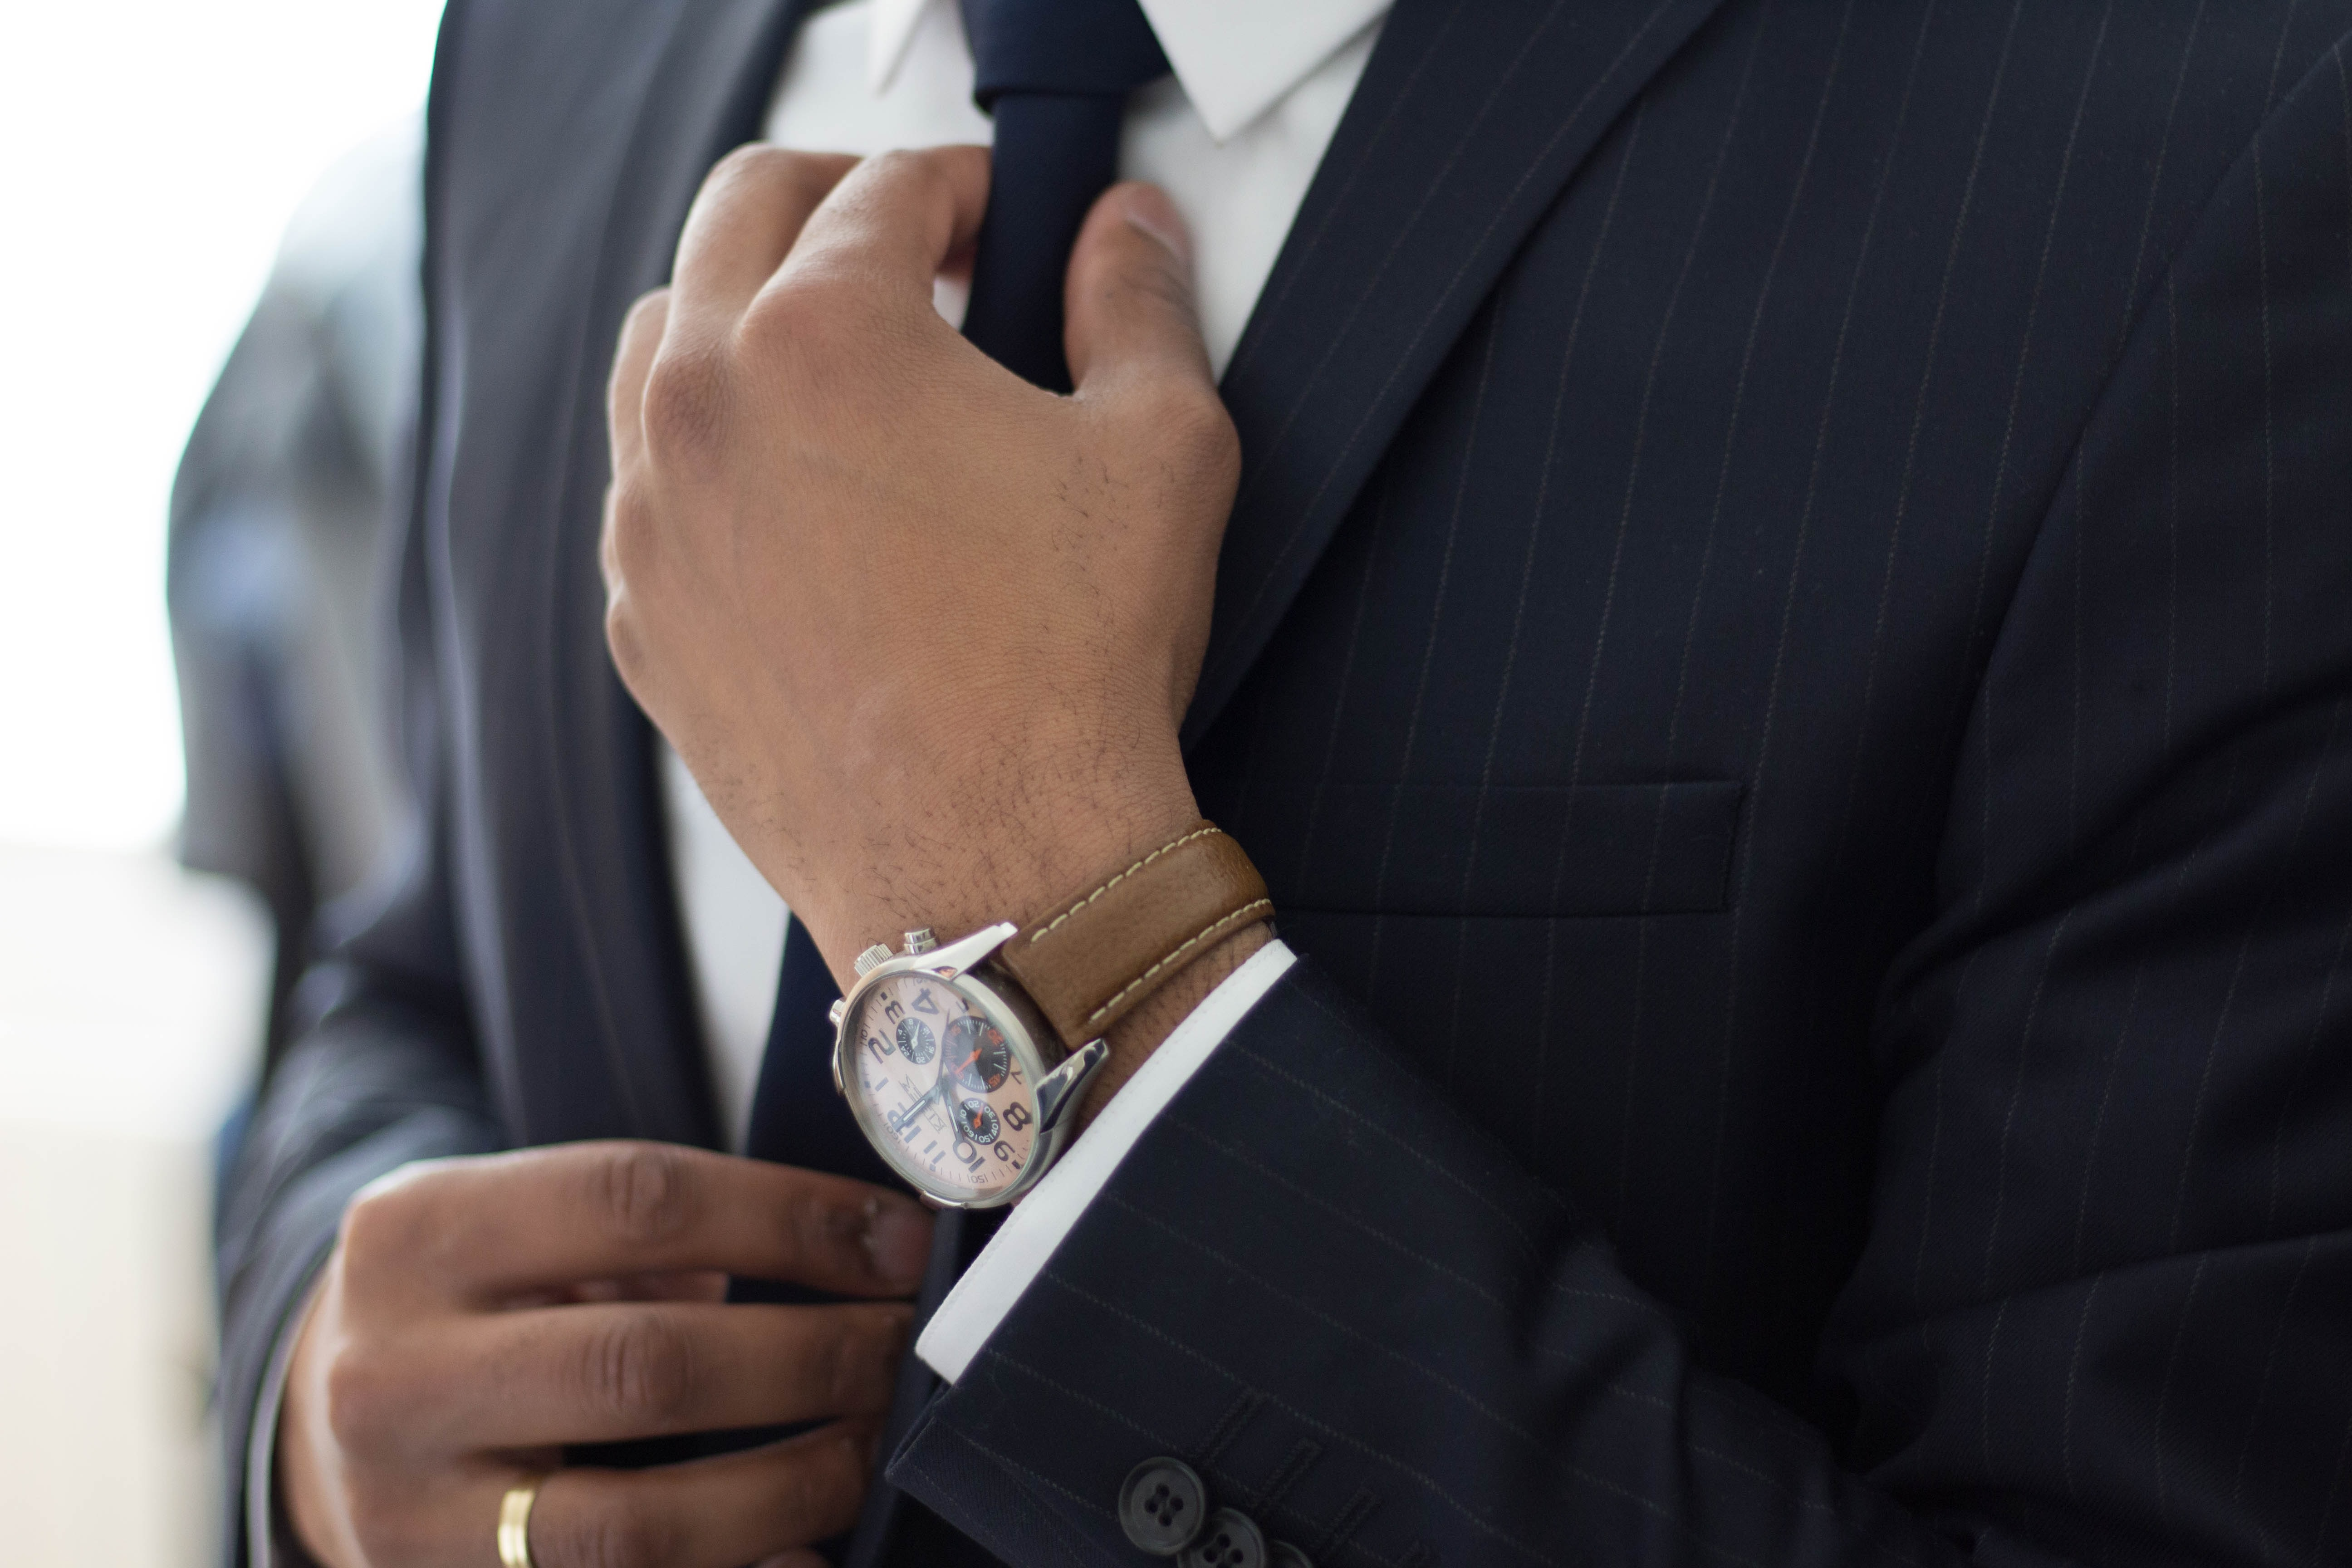 Man with suit and watch